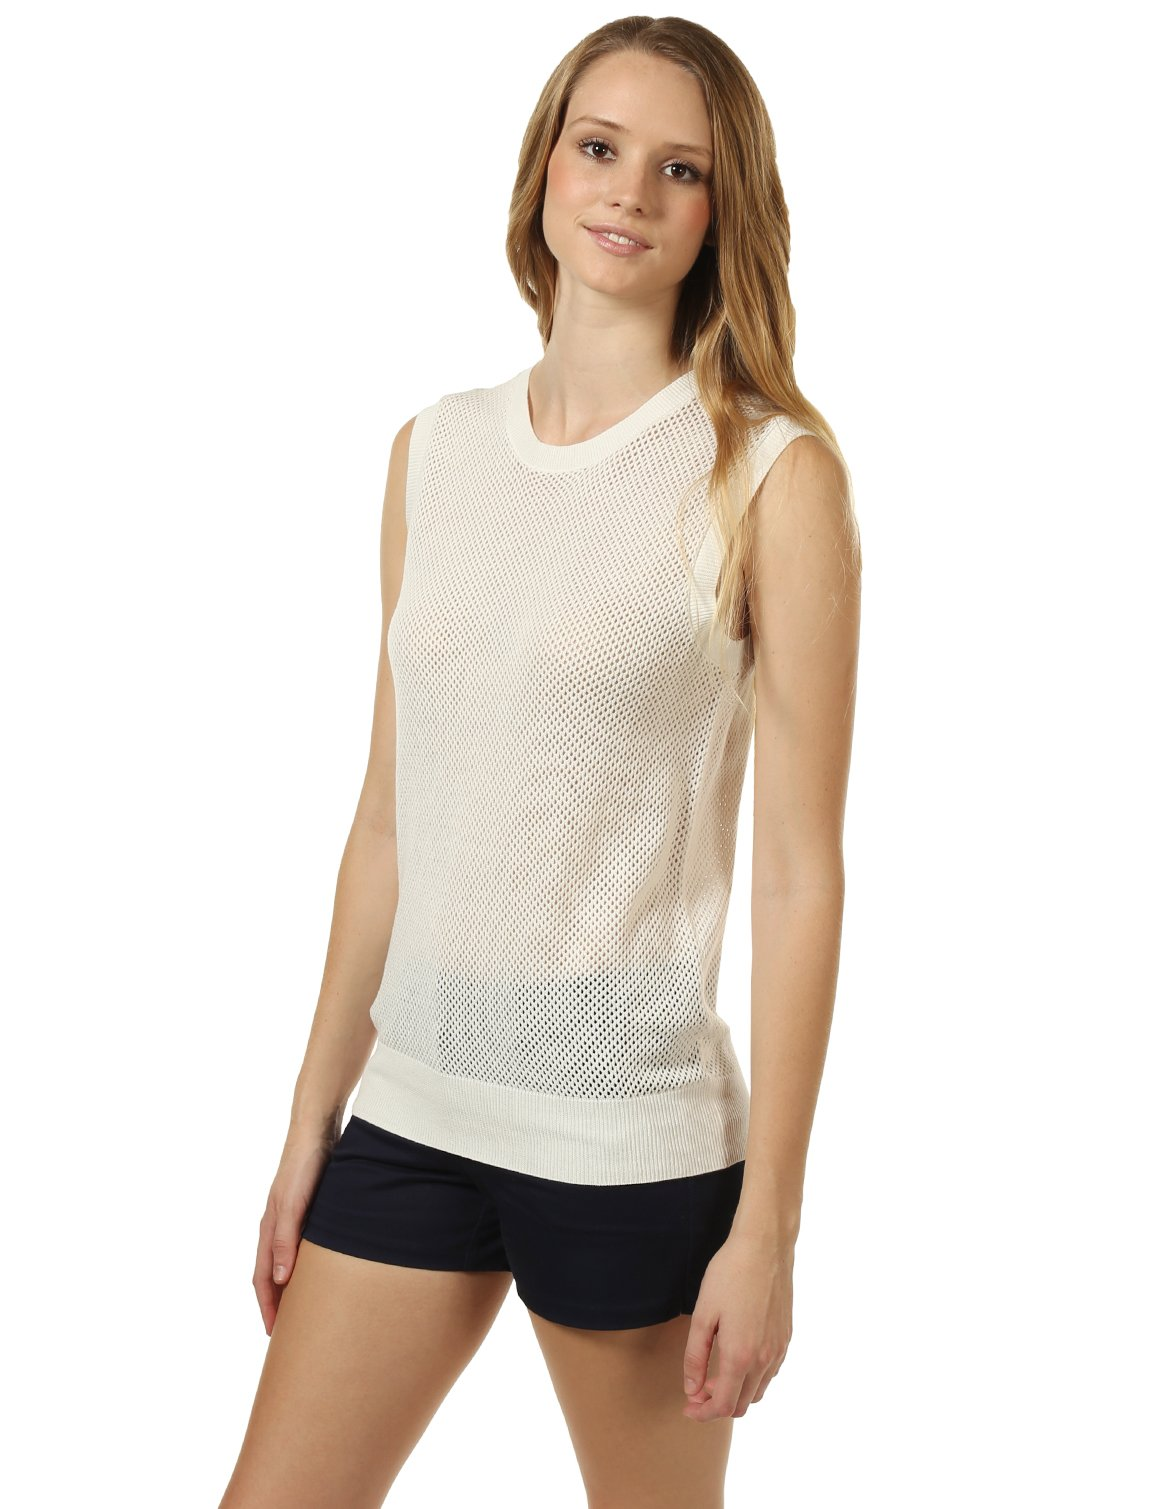 Mossimo Women's Open-Knit Sweater Vest M White